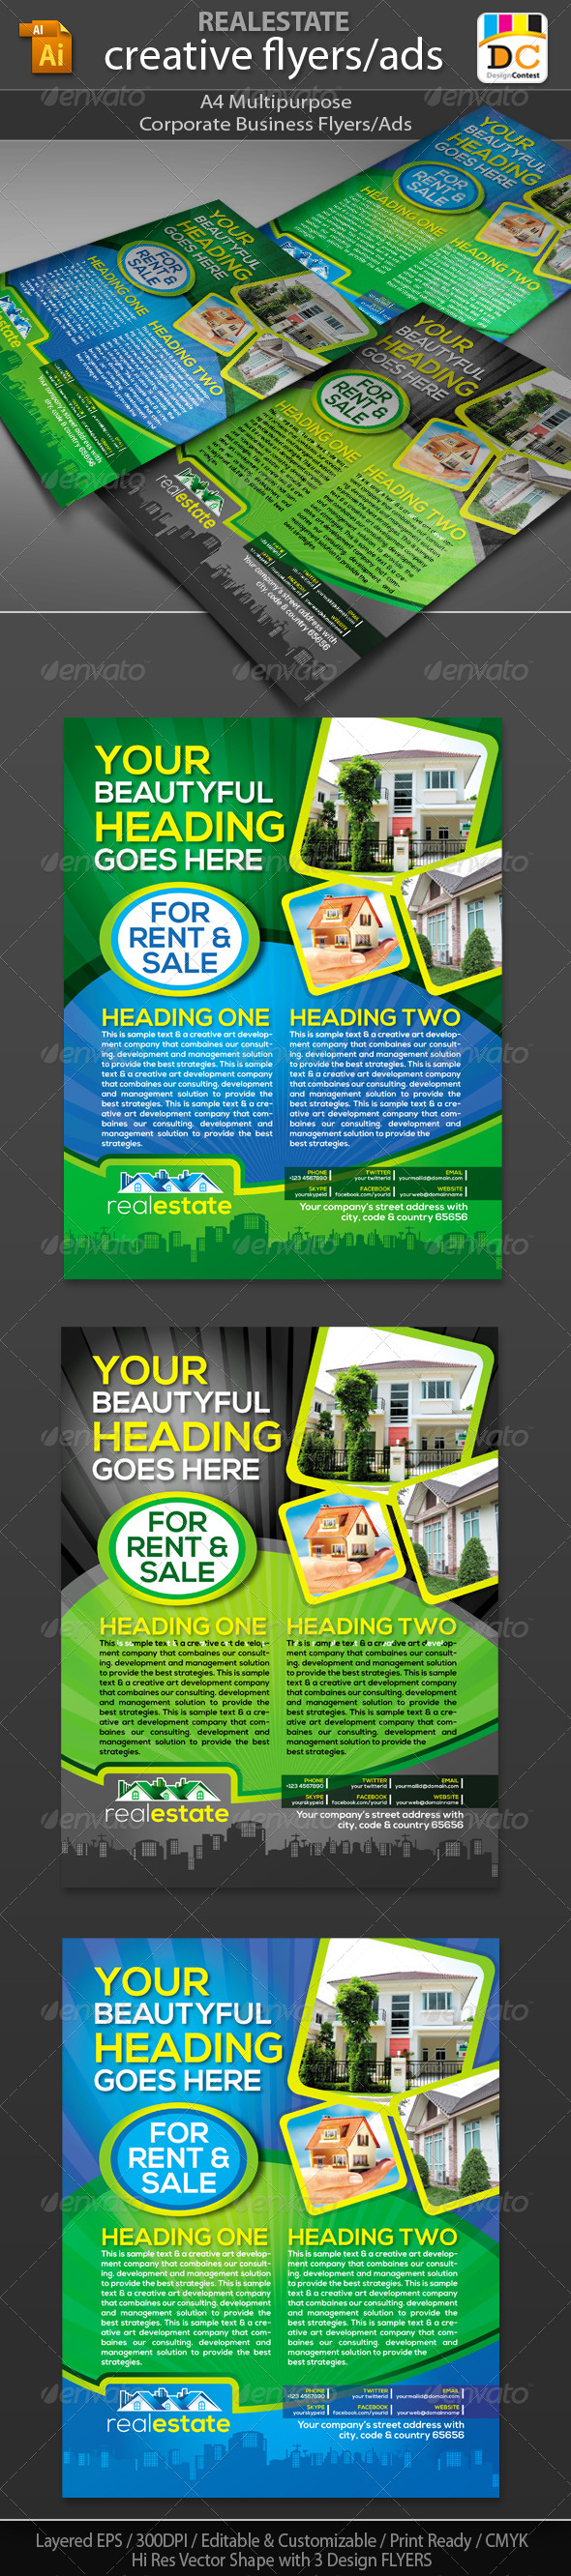 Real Estate Corporate Business Flyers/Adds